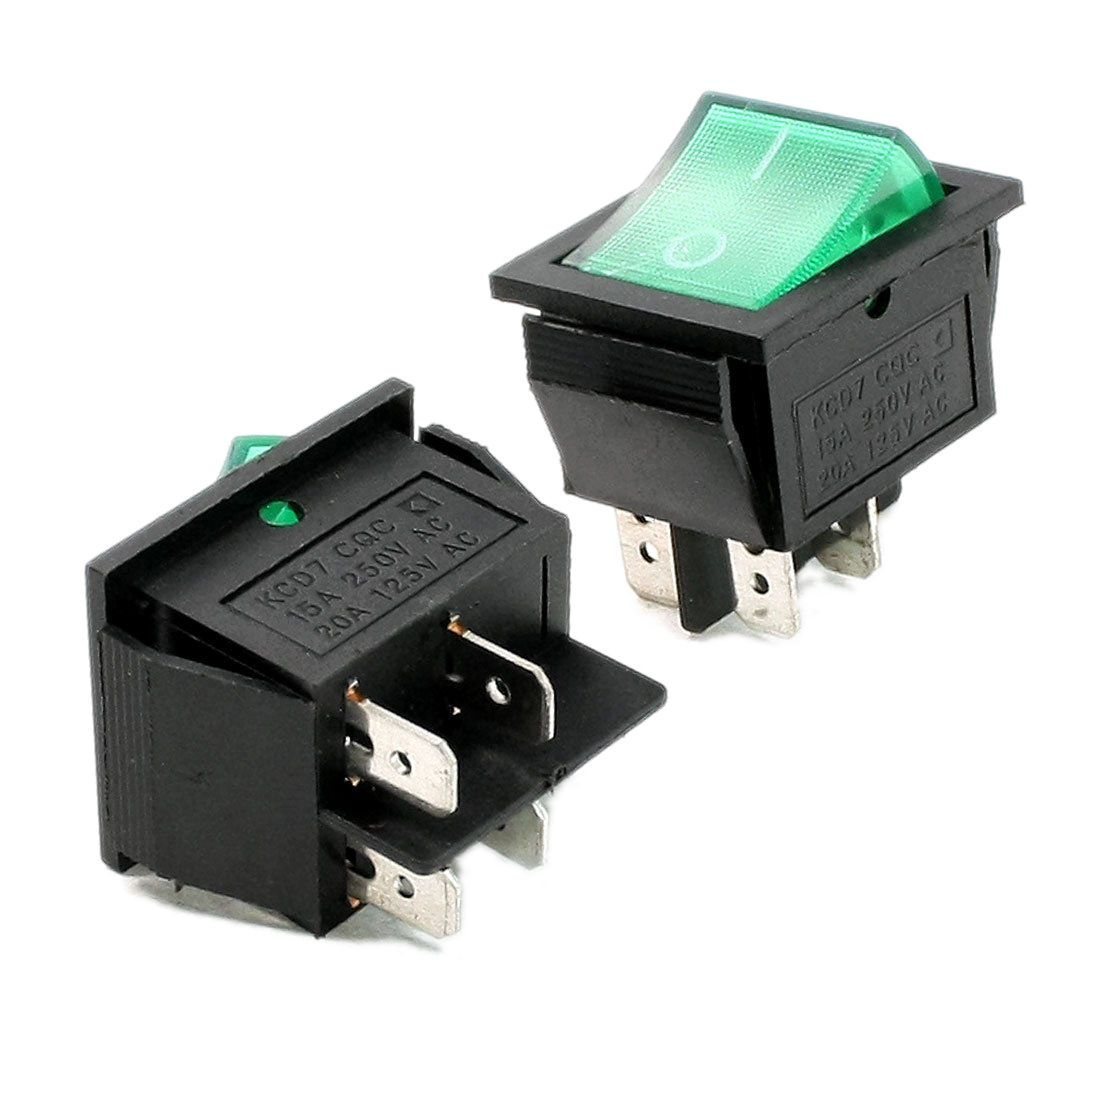 2 Pcs Green Illuminated Light On Off Boat Rocker Switch Ac 10a 250v 20a 125v Sodial Switch Rocker